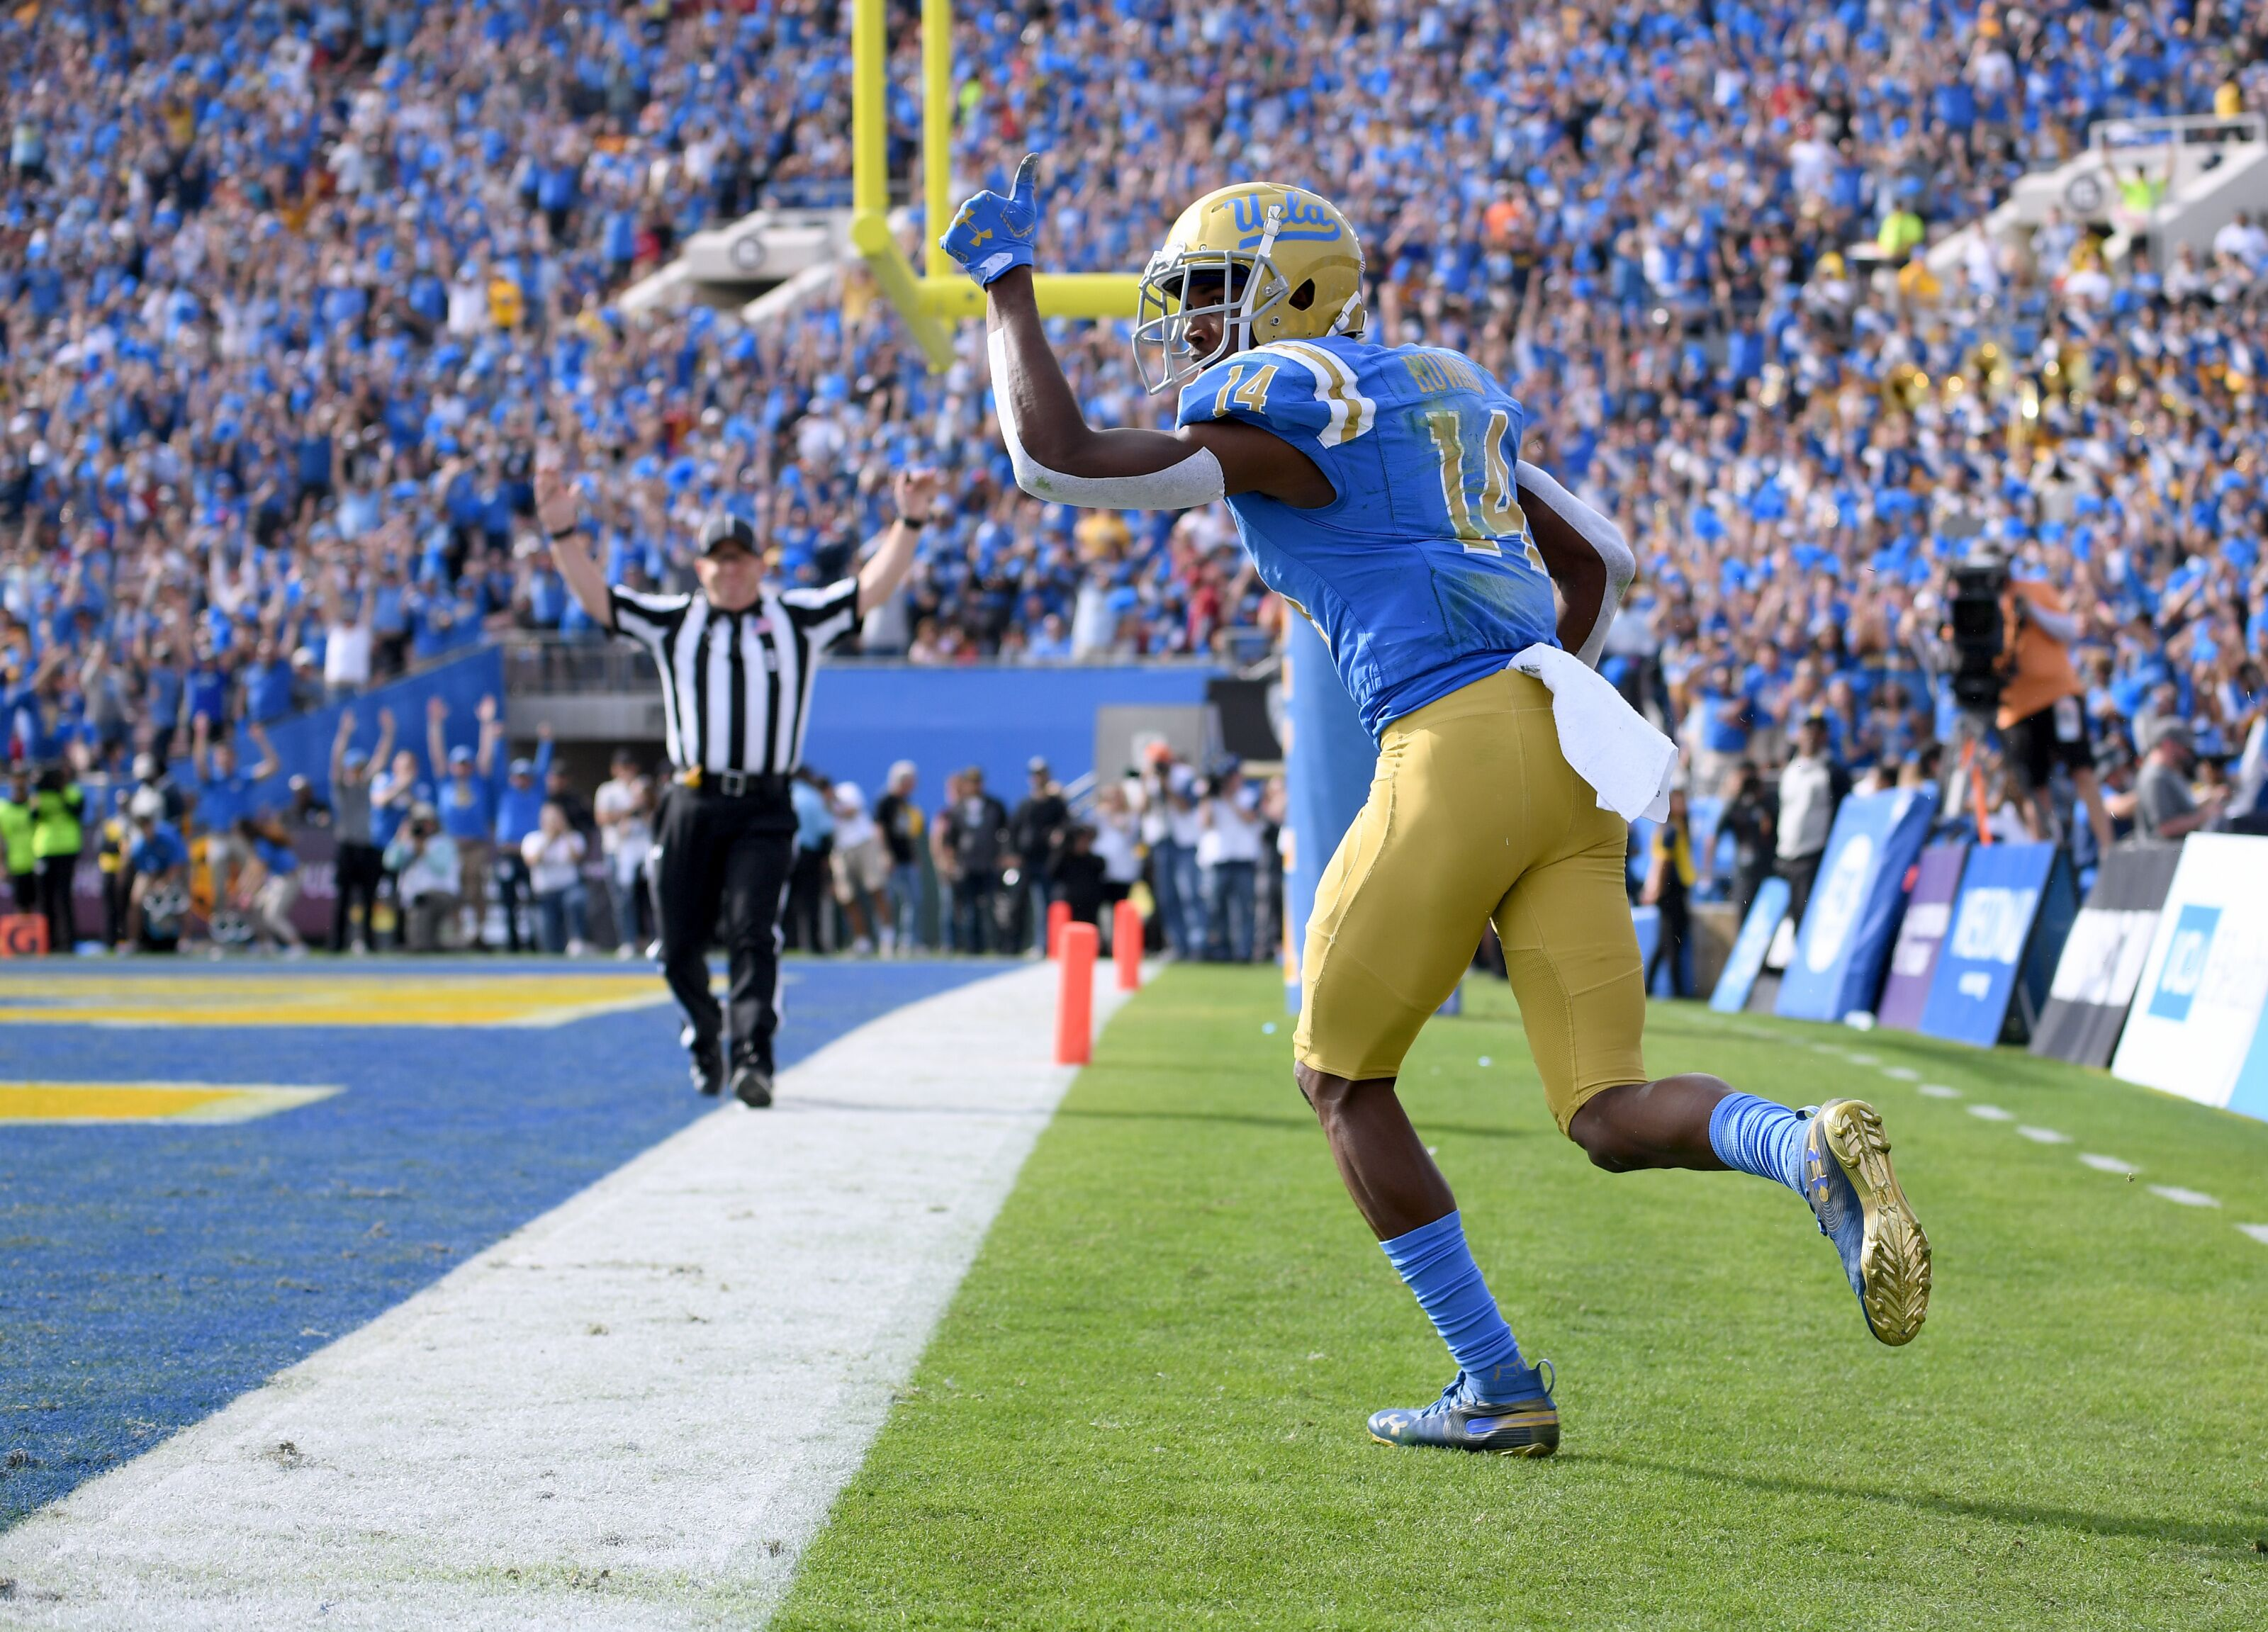 UCLA Football: The win over USC kills the pain of going 3-8